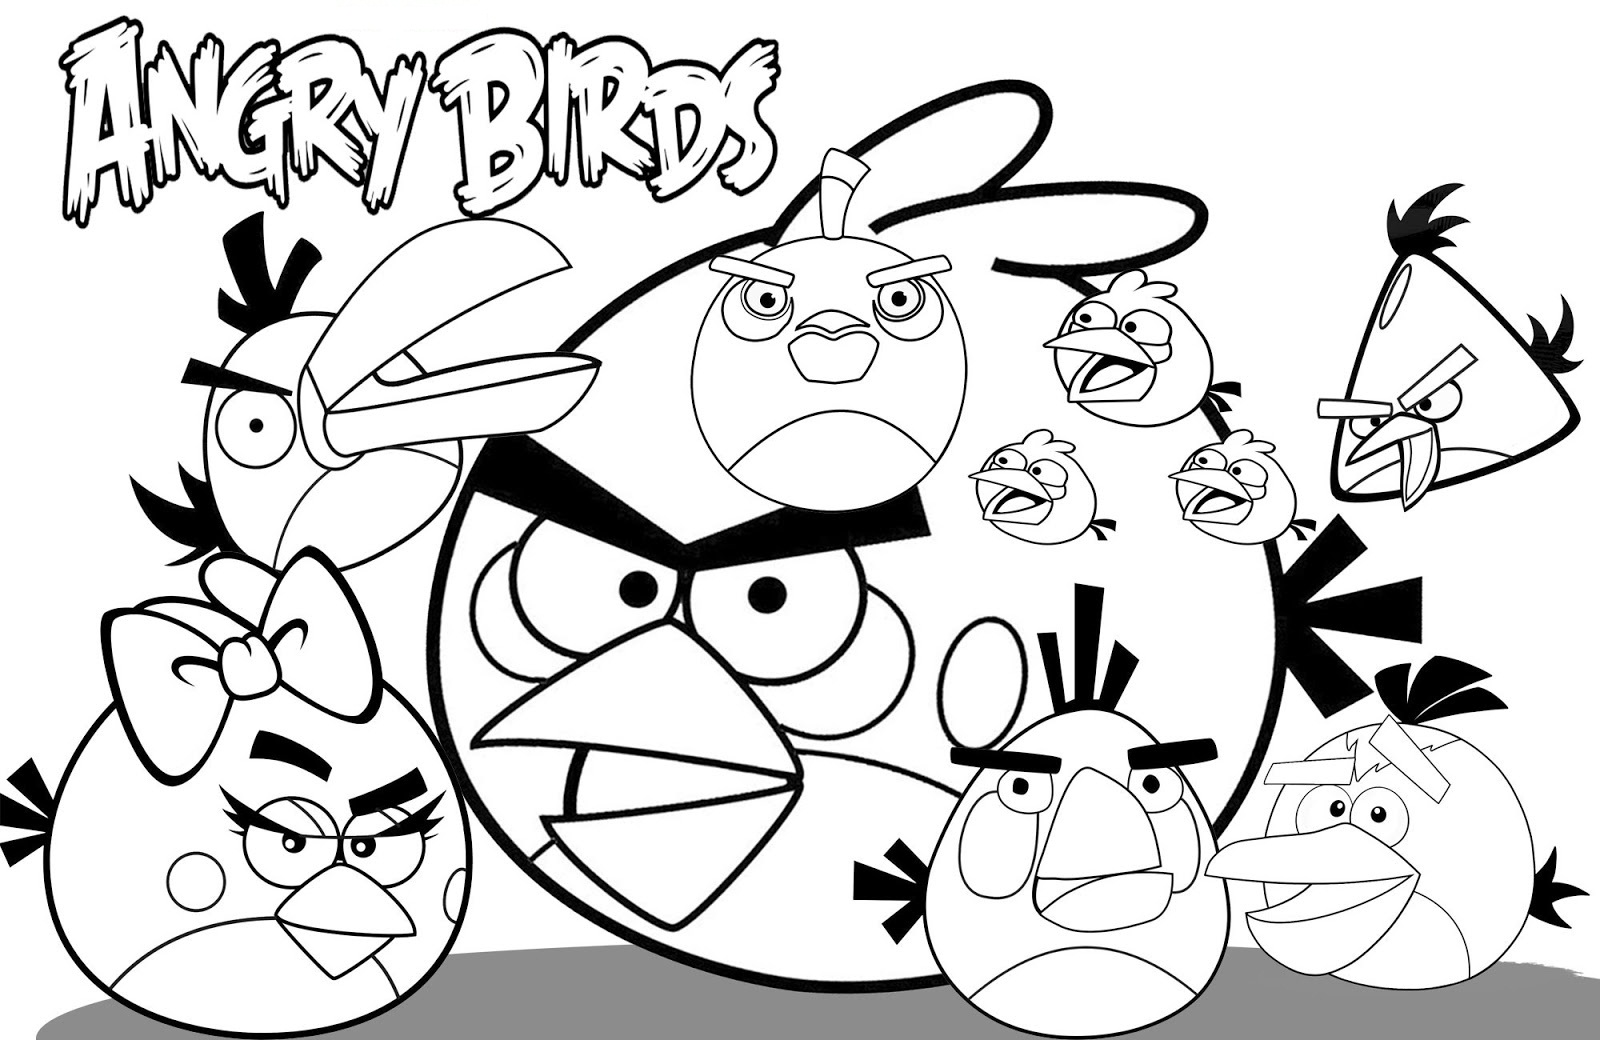 Bird For Kids Drawing at GetDrawings.com | Free for personal use ...